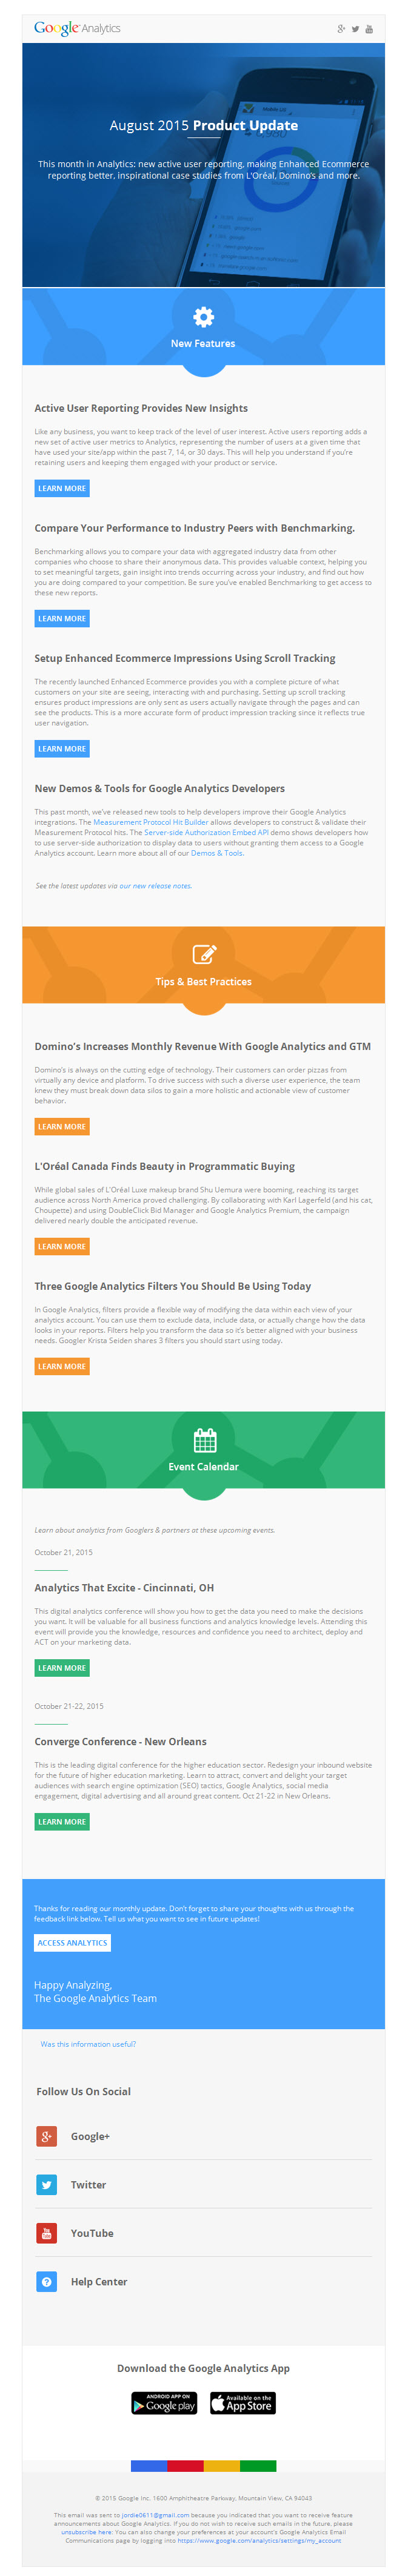 Google analytics – product update